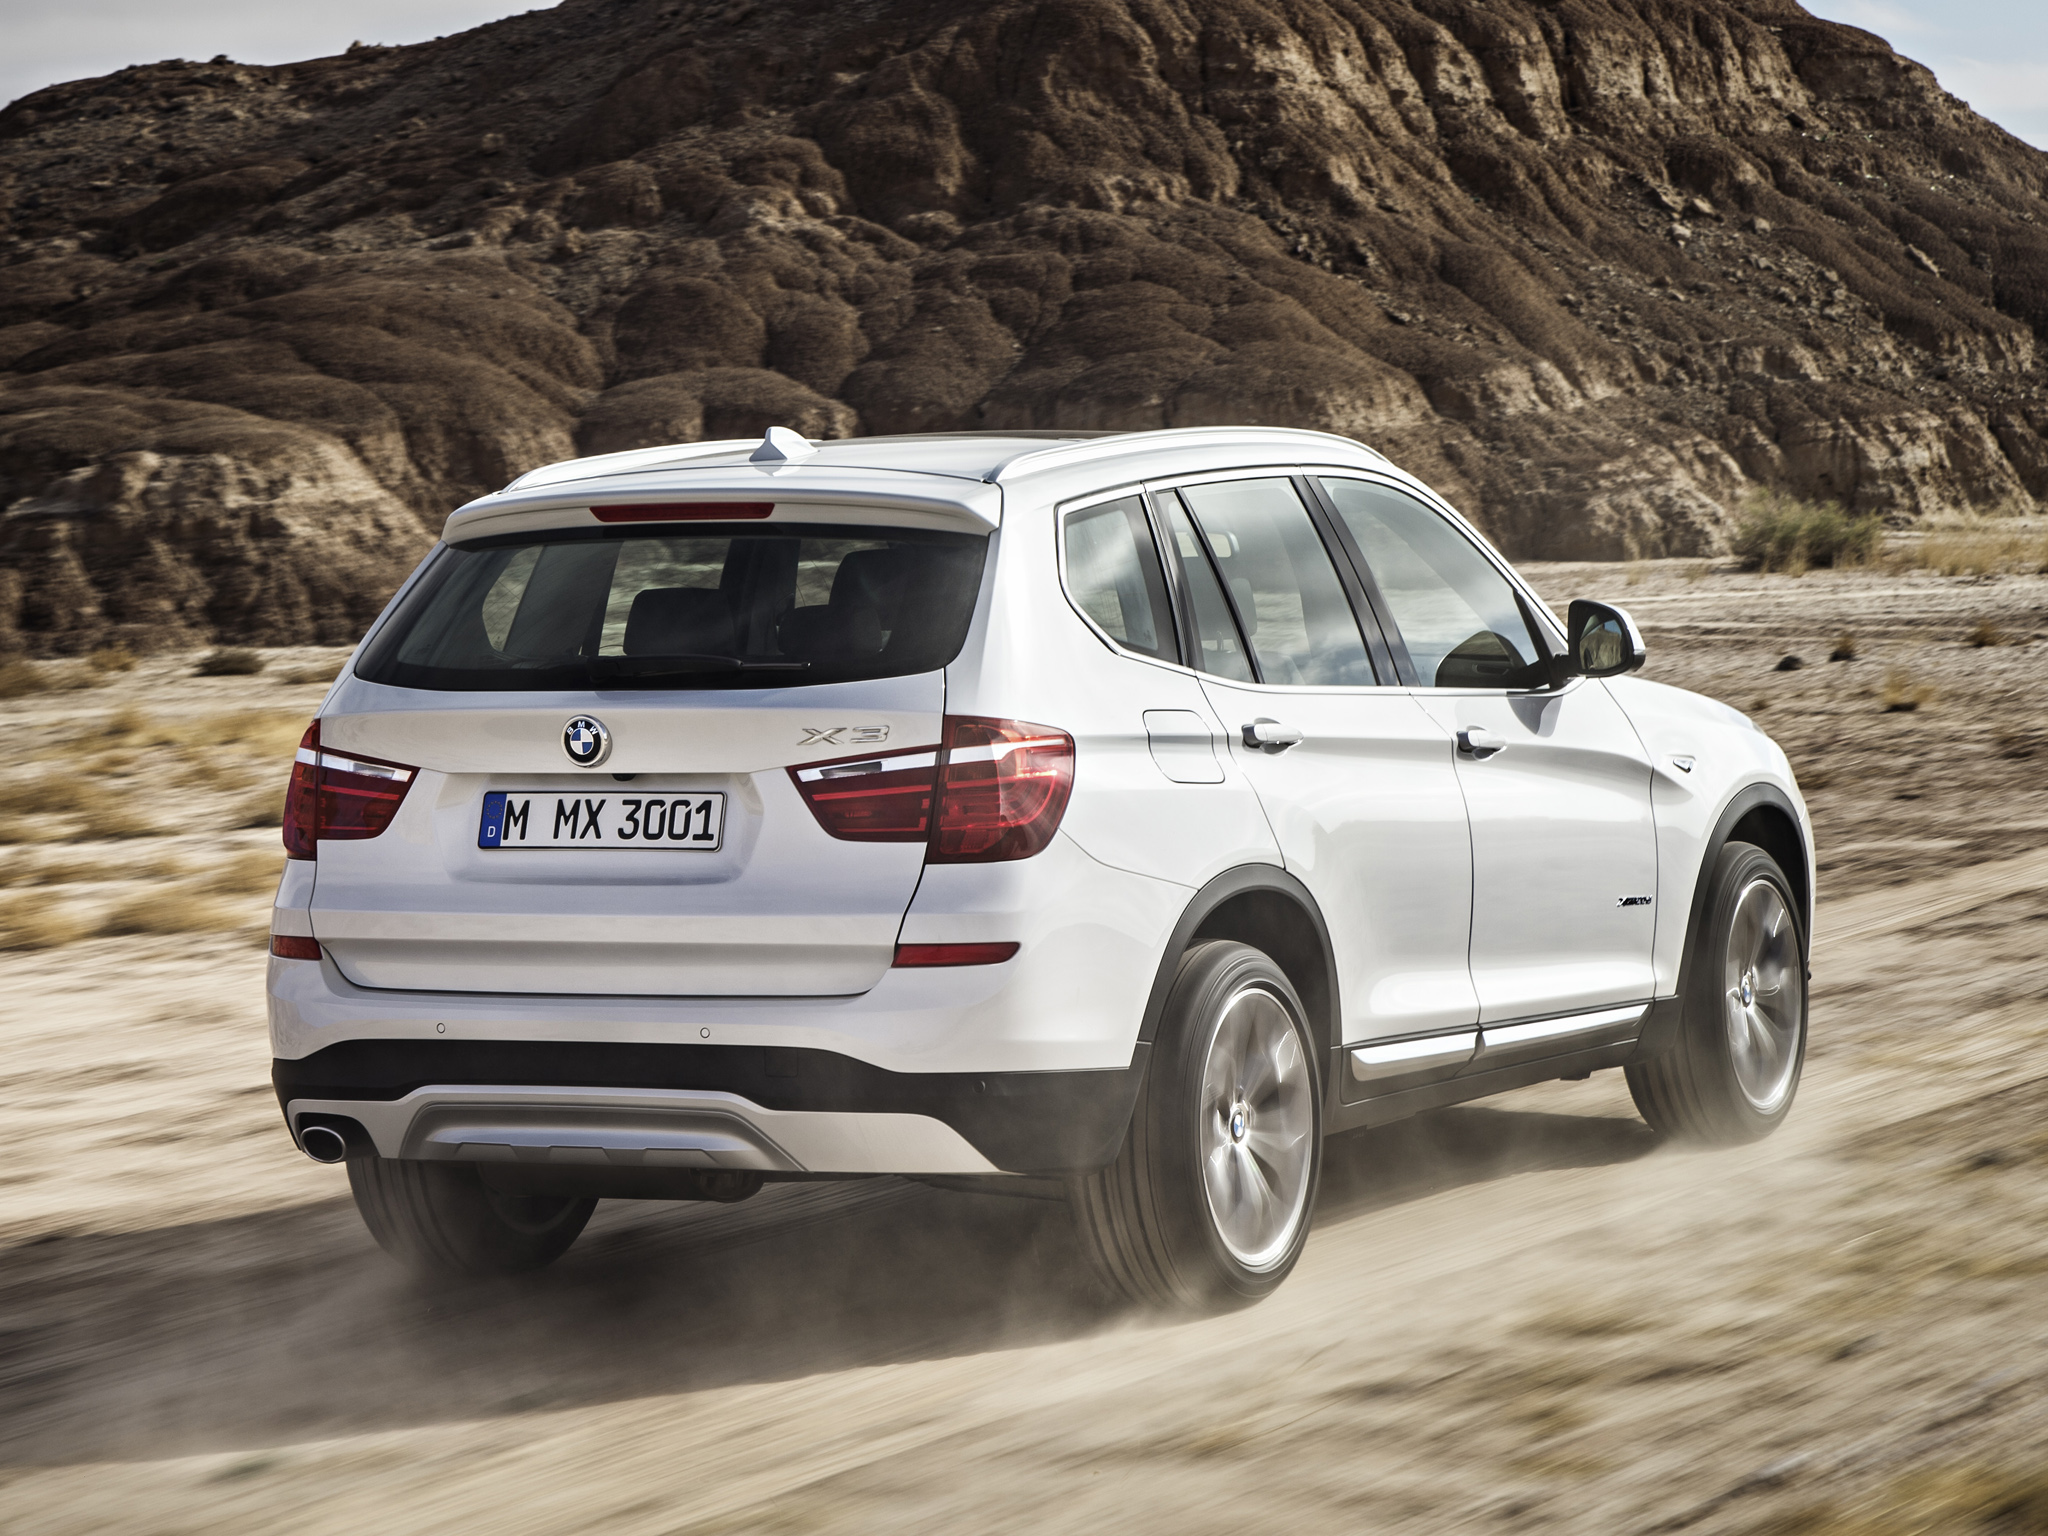 BMW X3 xDrive20d 2014 photo - 6